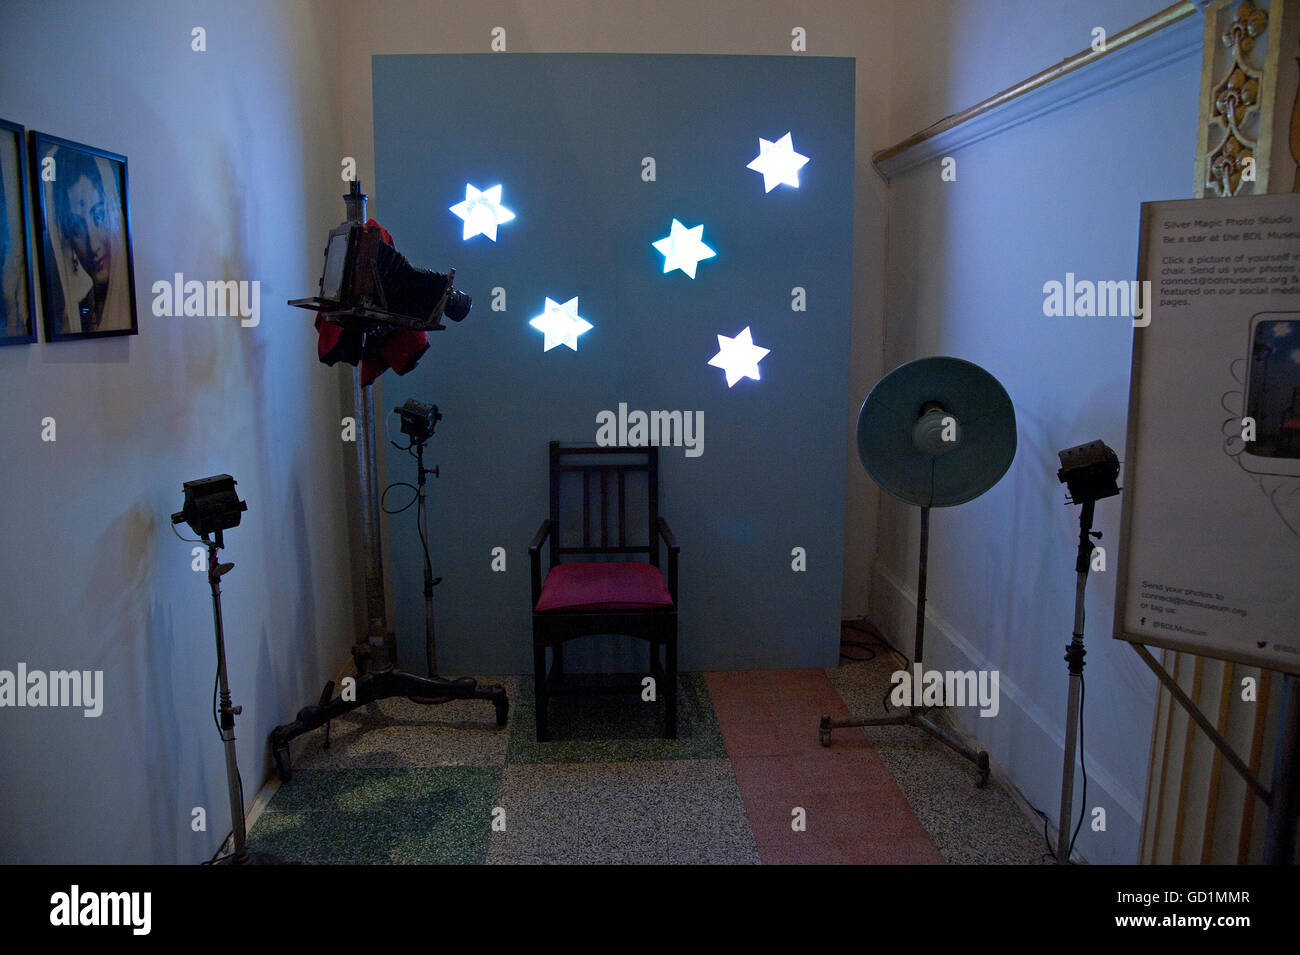 The image of Bollywood actor s photo studio in Gallery of BDL Musuem, Mumbai, India - Stock Image